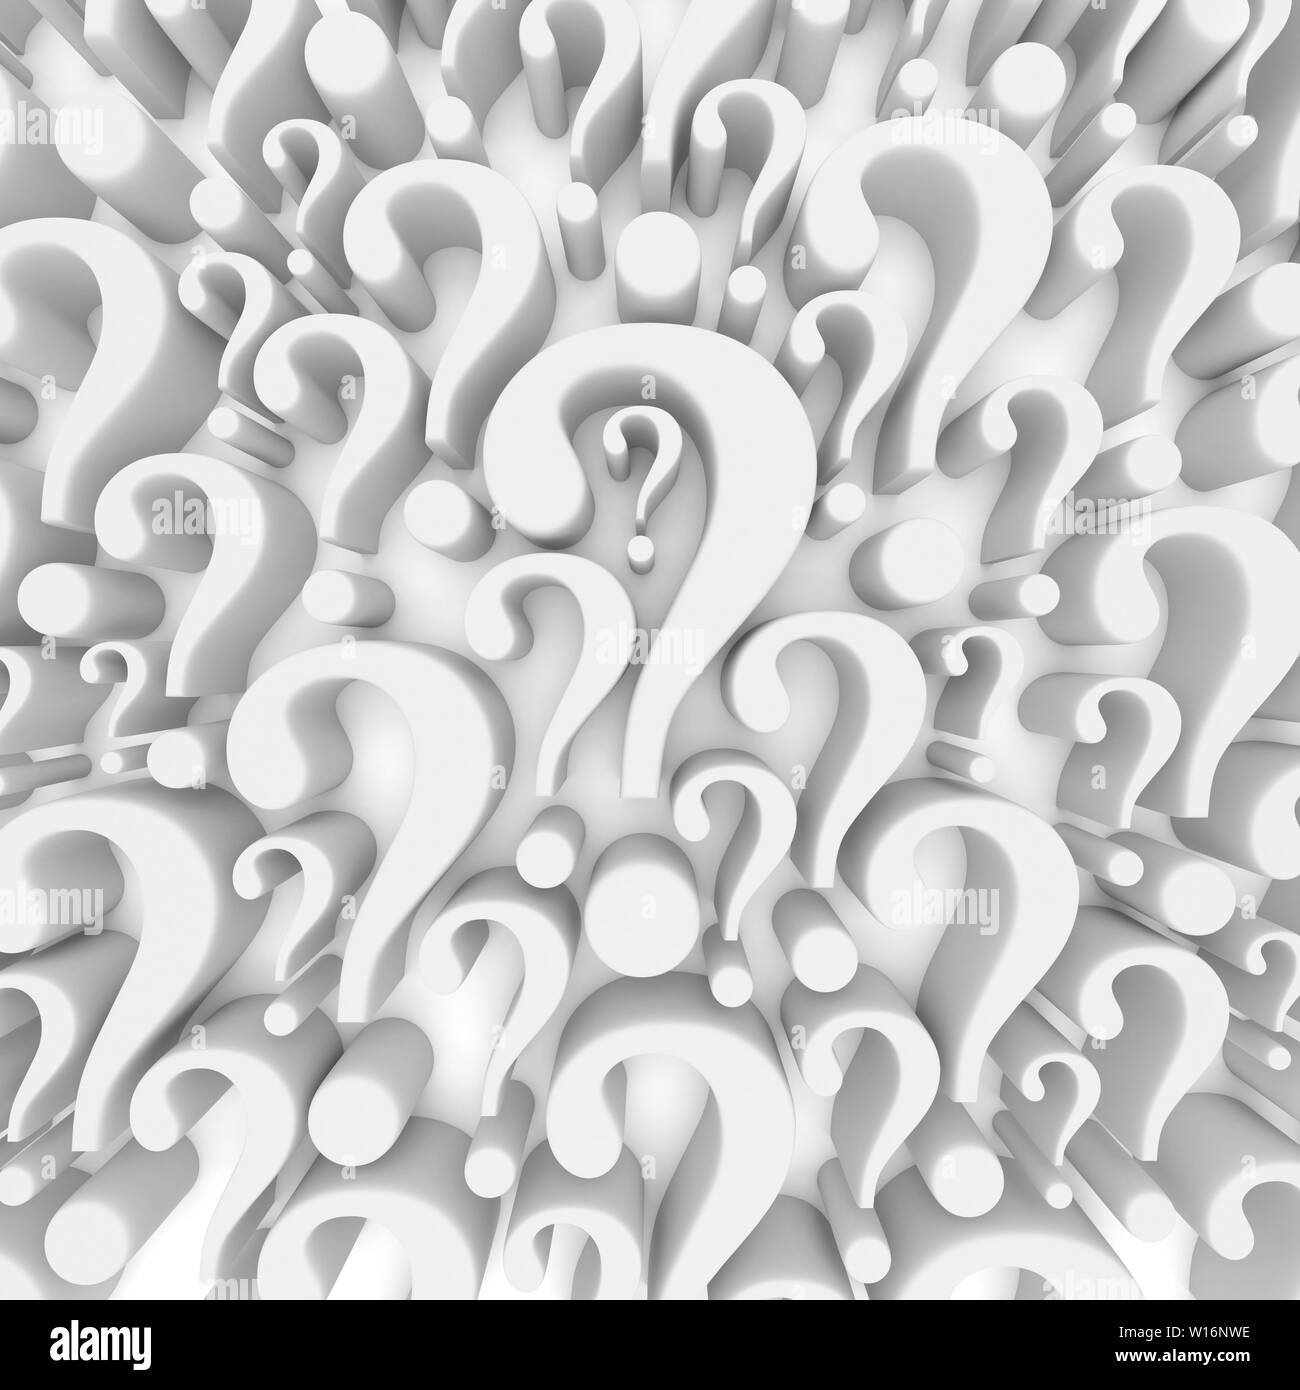 Question mark background - 3d render - Stock Image